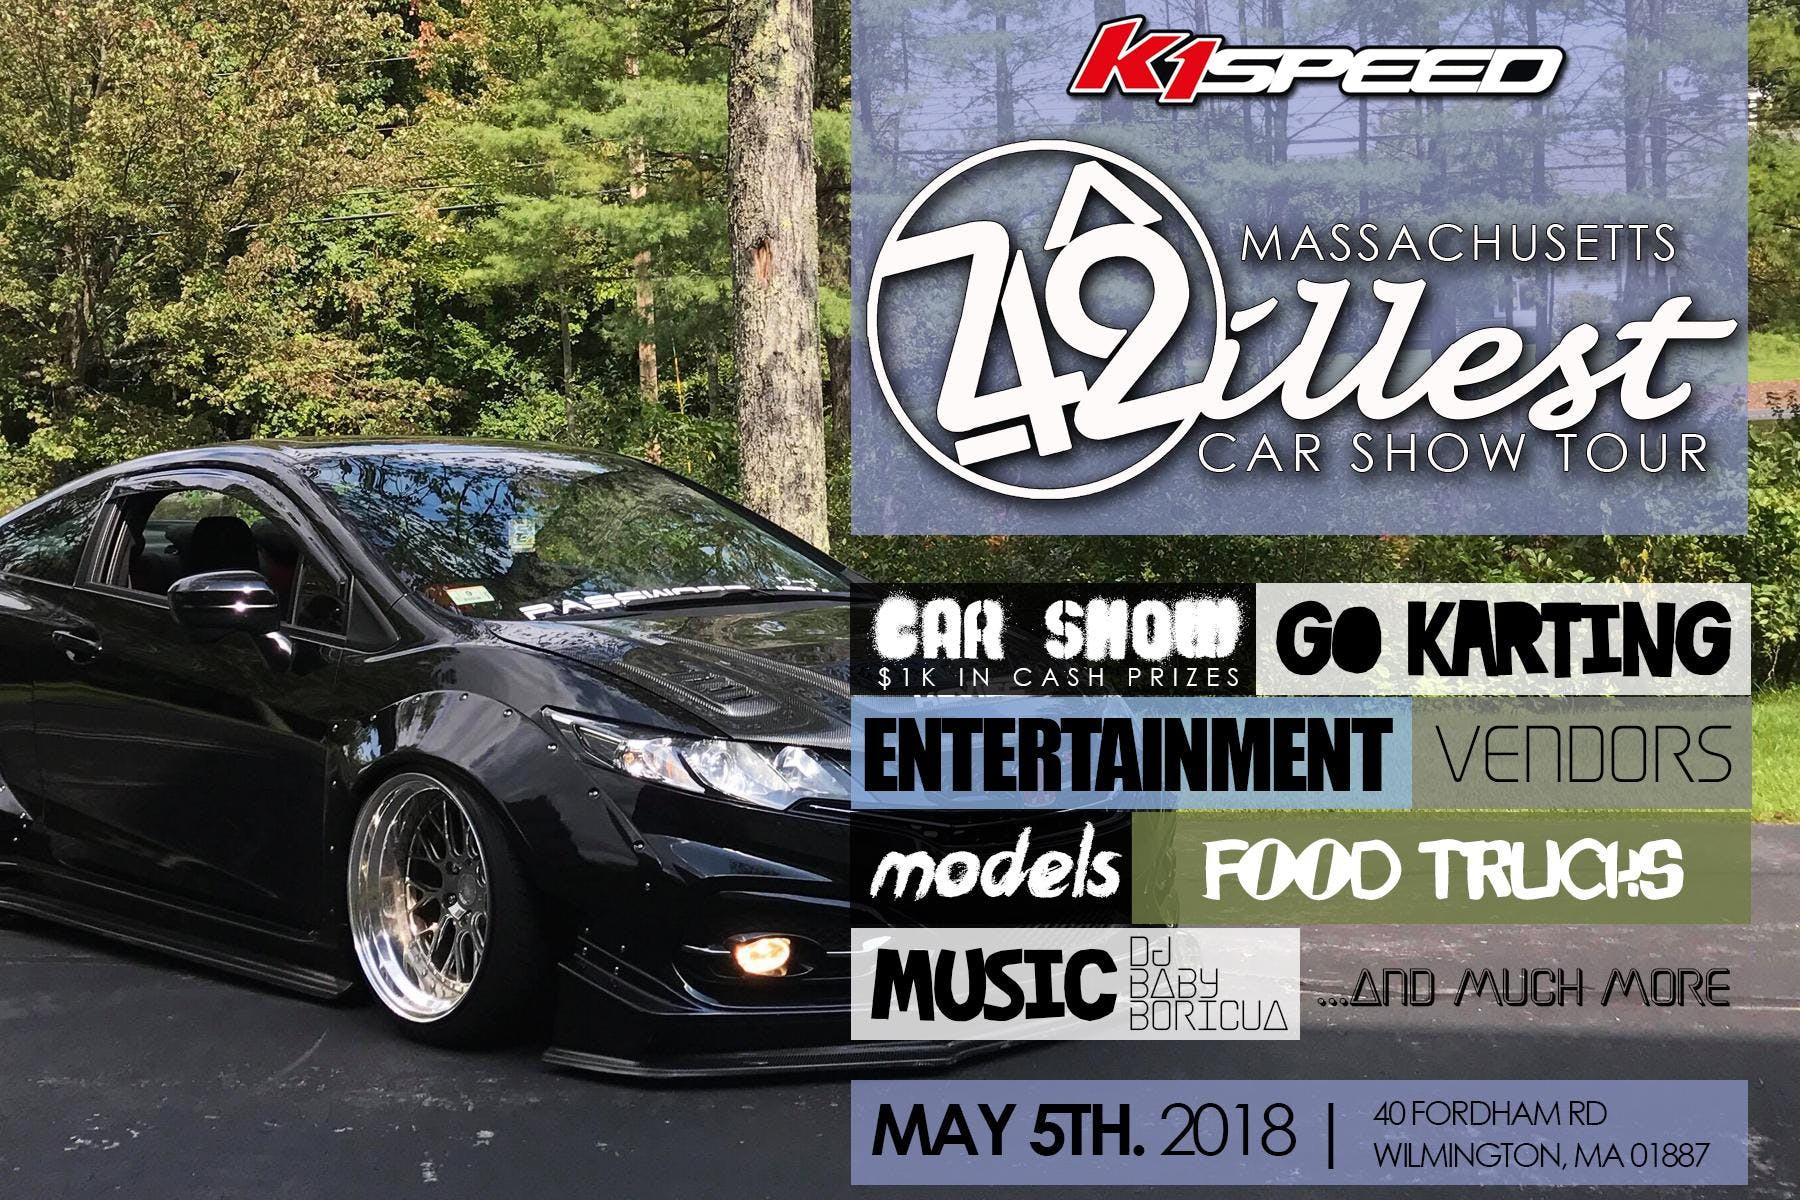 MASSACHUSETTS illest Car Show at K1 Speed, Wilmington